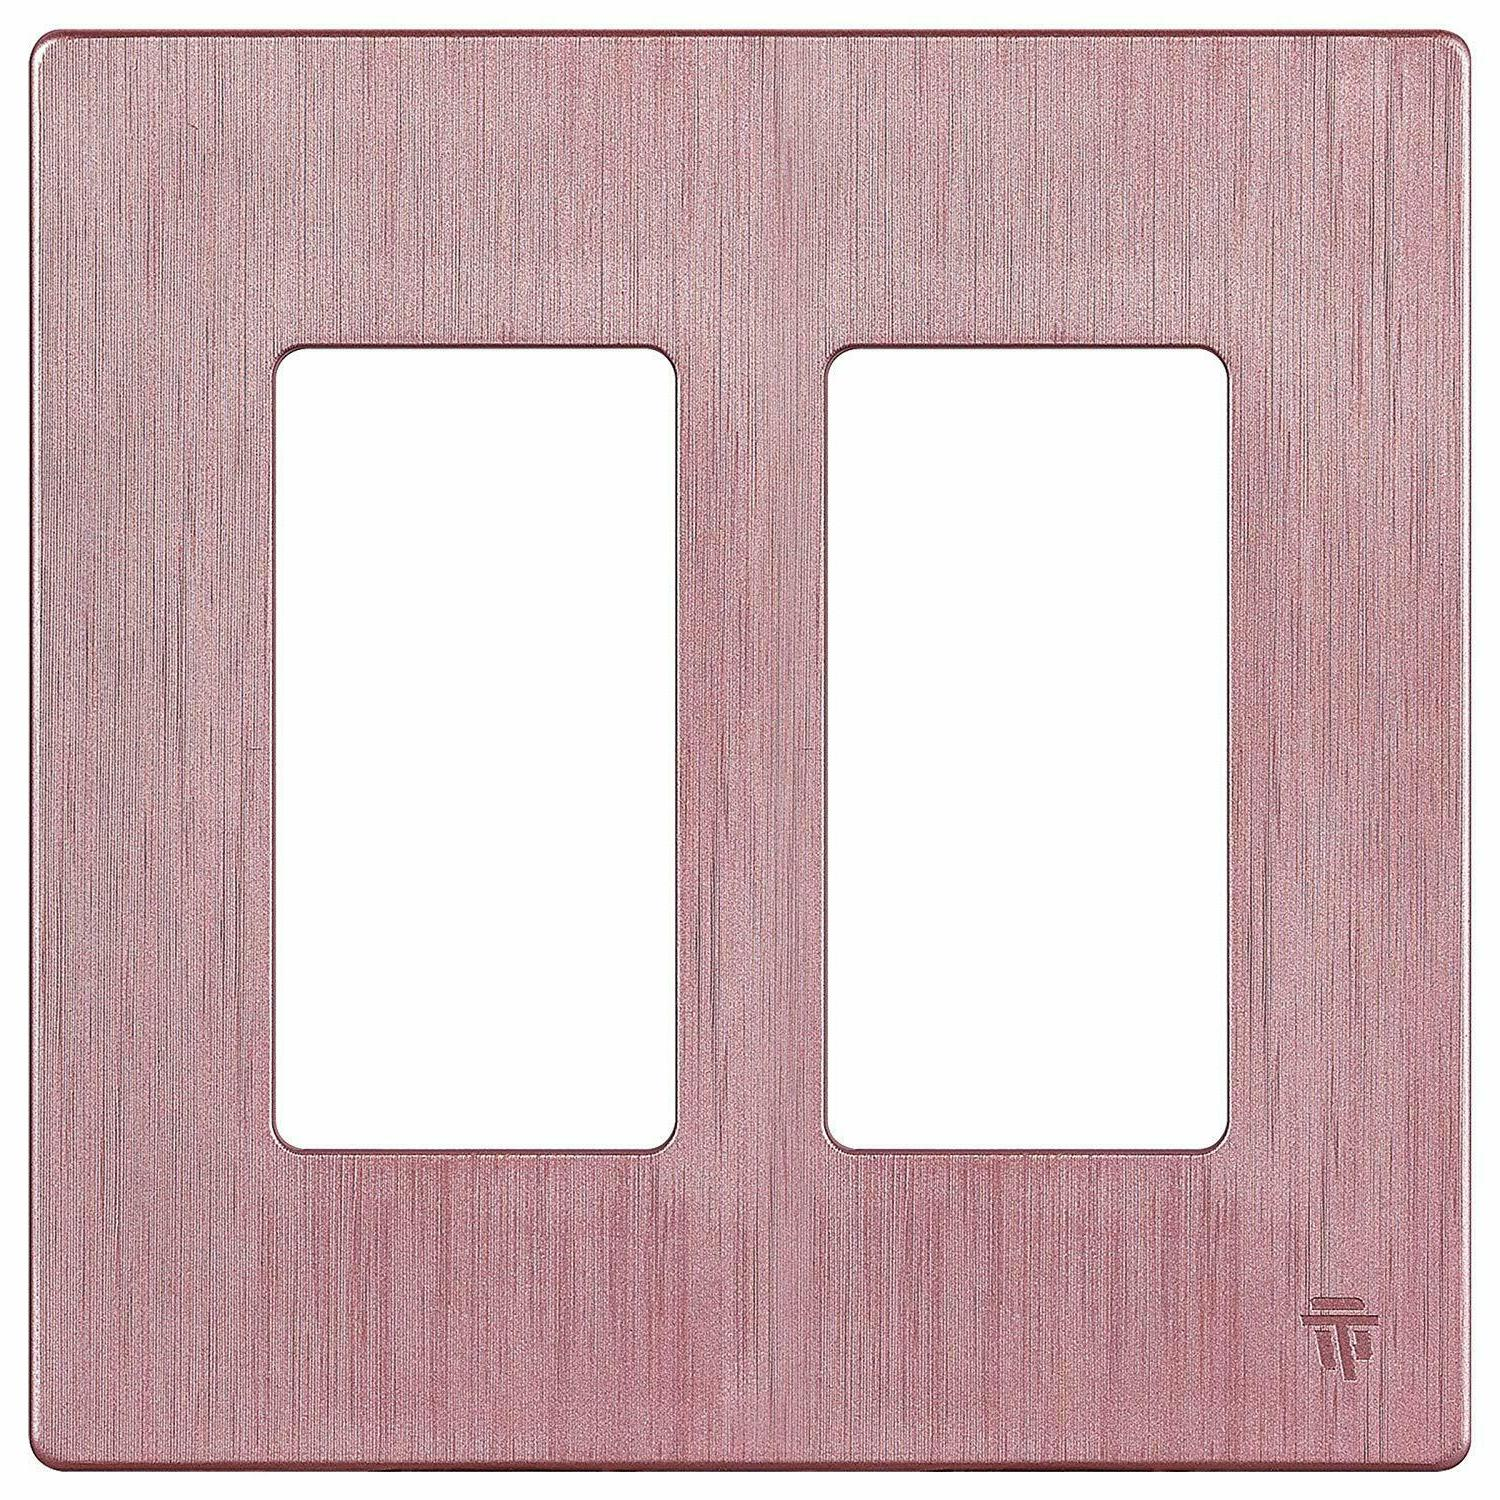 Decorator 2 Switch Cover